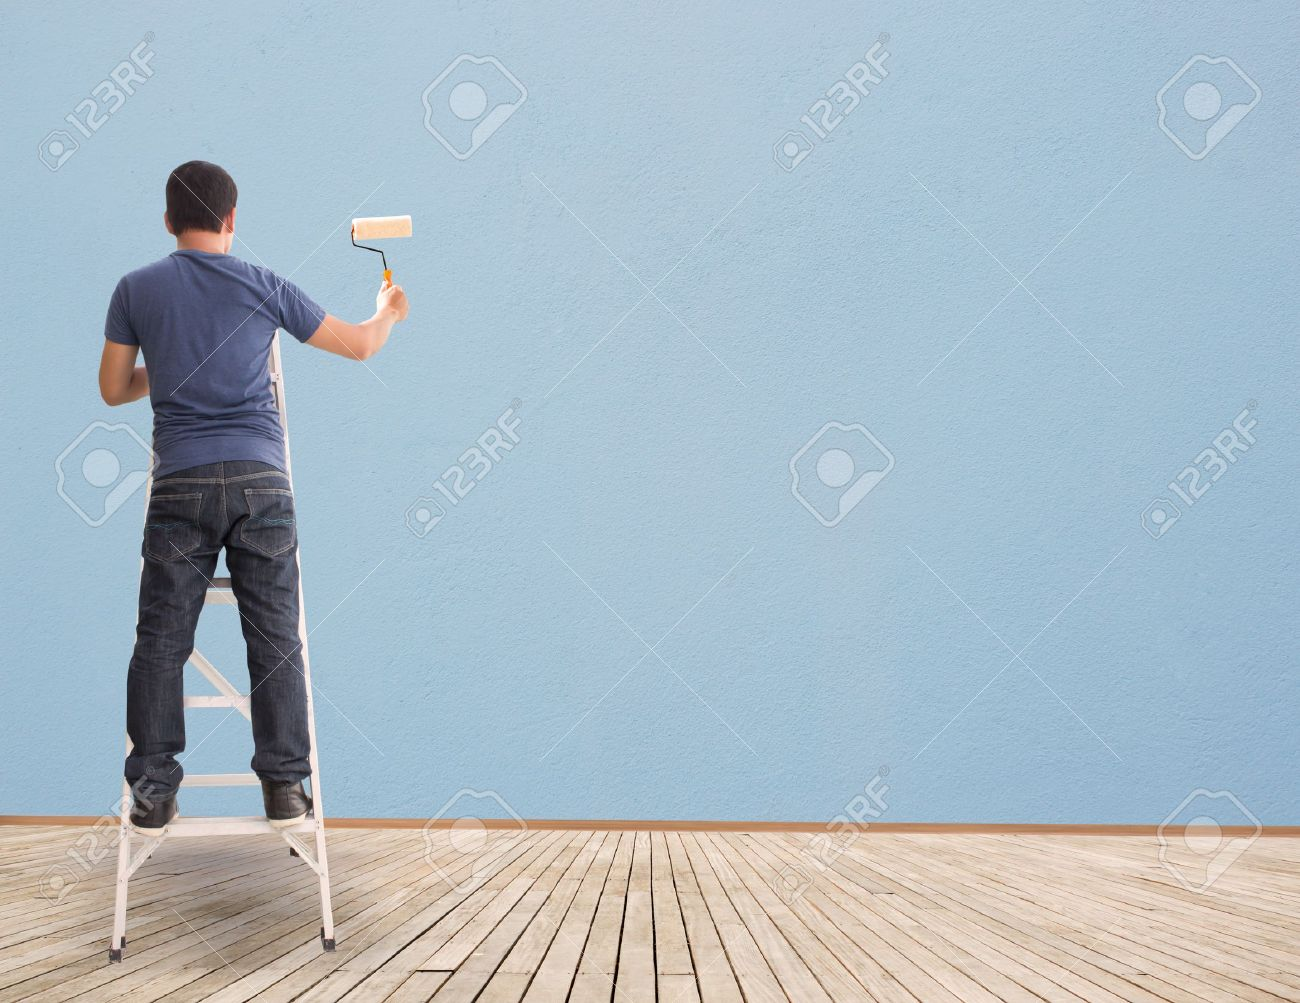 Man Painting Yellow Color On Wall Stock Images - Image: 29651474